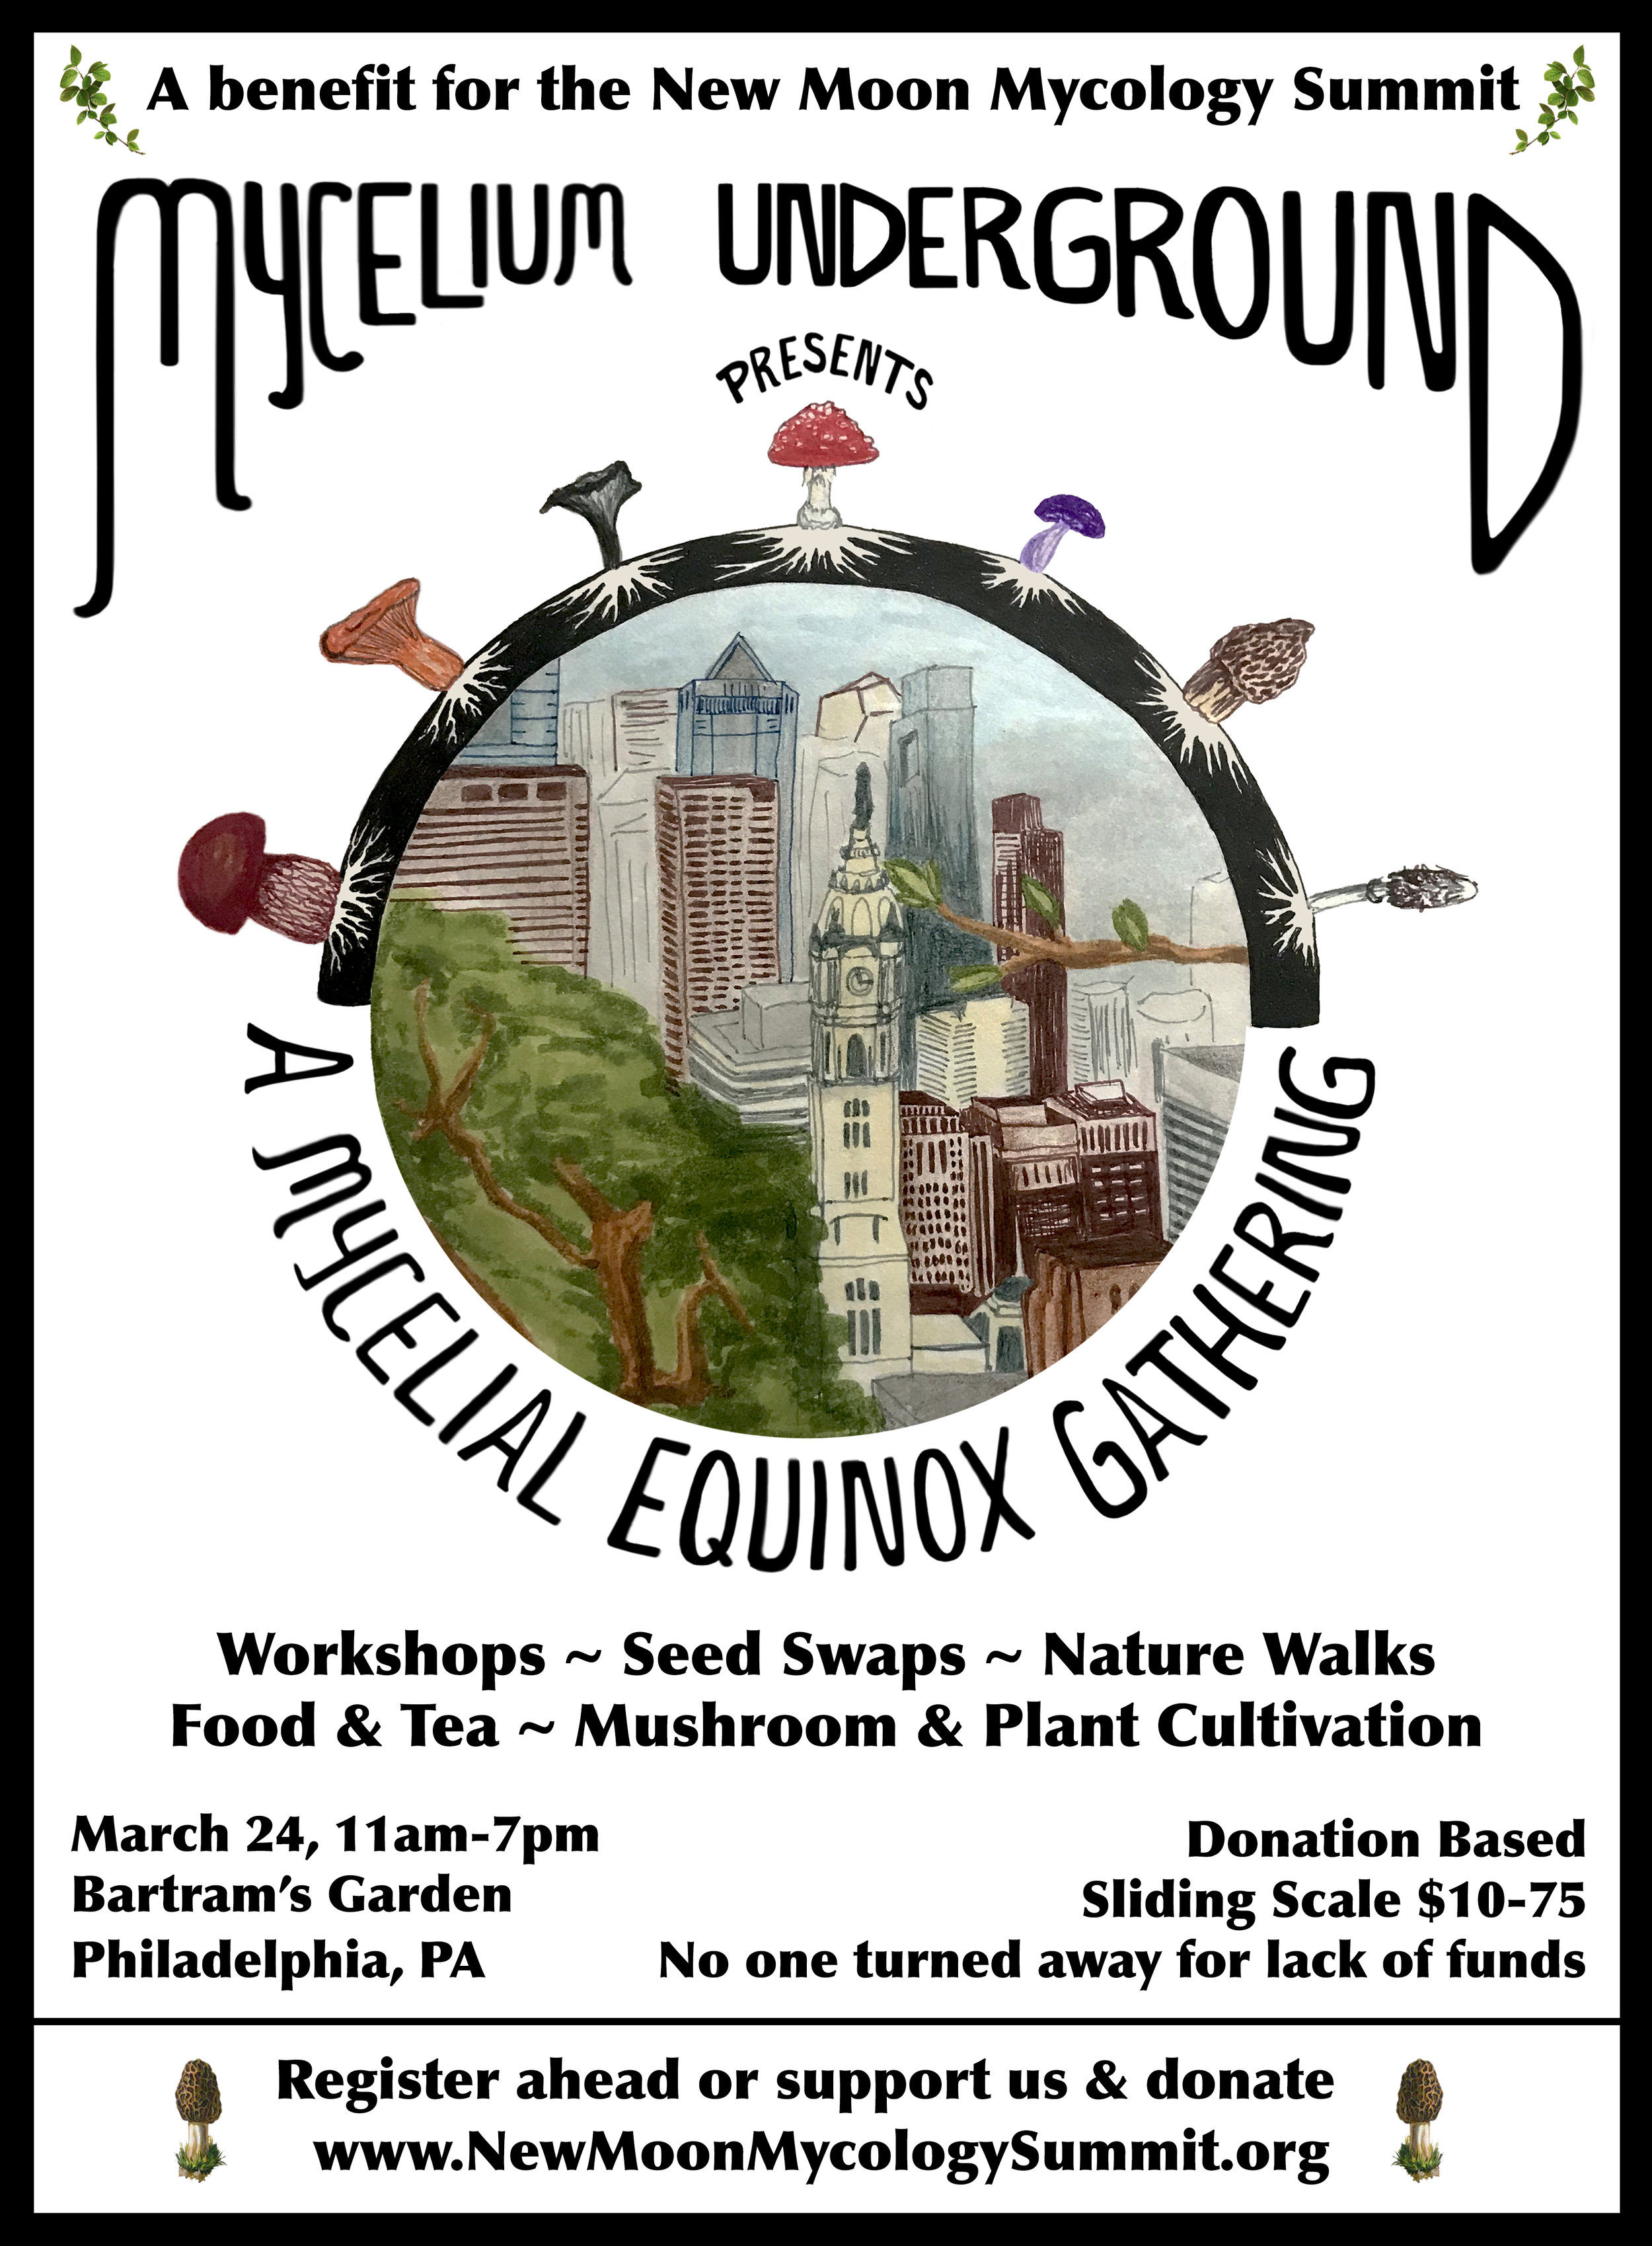 Join us in Philly! - March 24, 201911-7pmBartram's GardenSpend the day celebrating the recent Spring Equinox the way nature intended; amongst the plants, mushrooms, friends & family!Activities:Workshops, Cooking Demos, Guided Nature Walks, Wild Identification, Mushroom + Plant Cultivation, Silent Auction, Art making, Seed Swap, Plant + Mushroom Medicine + Kid Activities